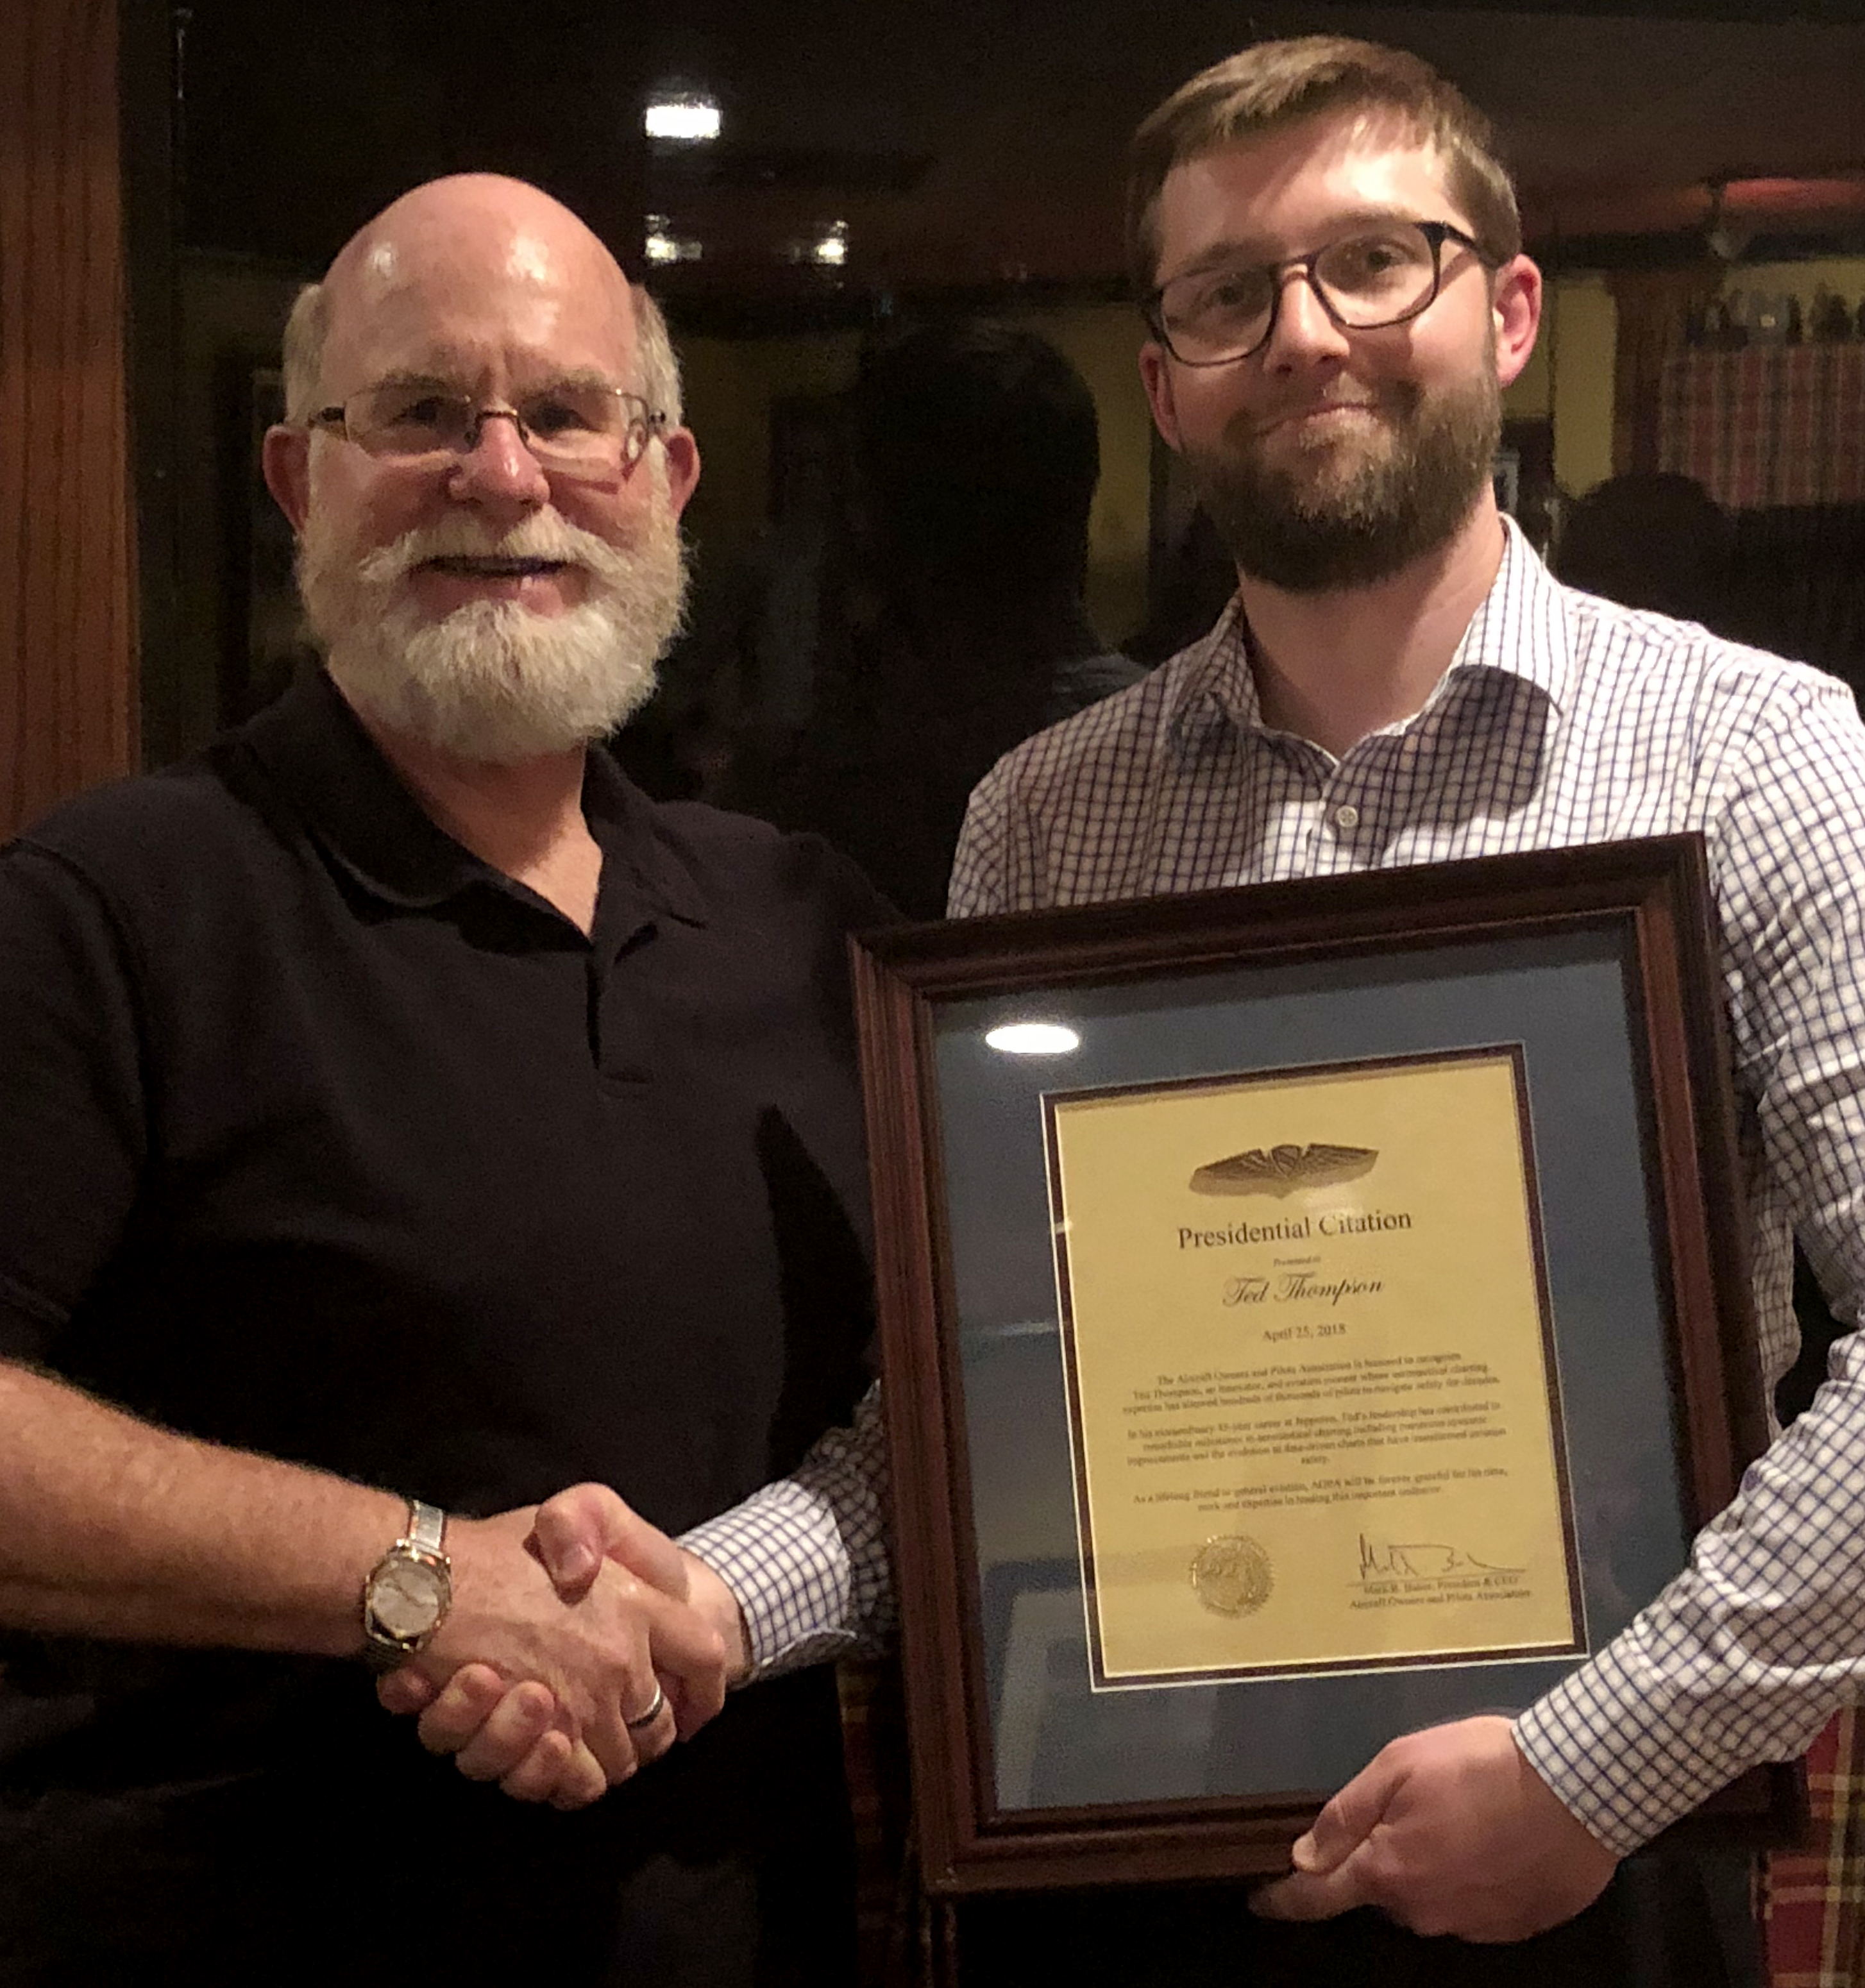 Thompson receives AOPA's Presidential Citation from AOPA Senior Director of Airspace and Air Traffic Rune Duke. Photo courtesy of Rune Duke.